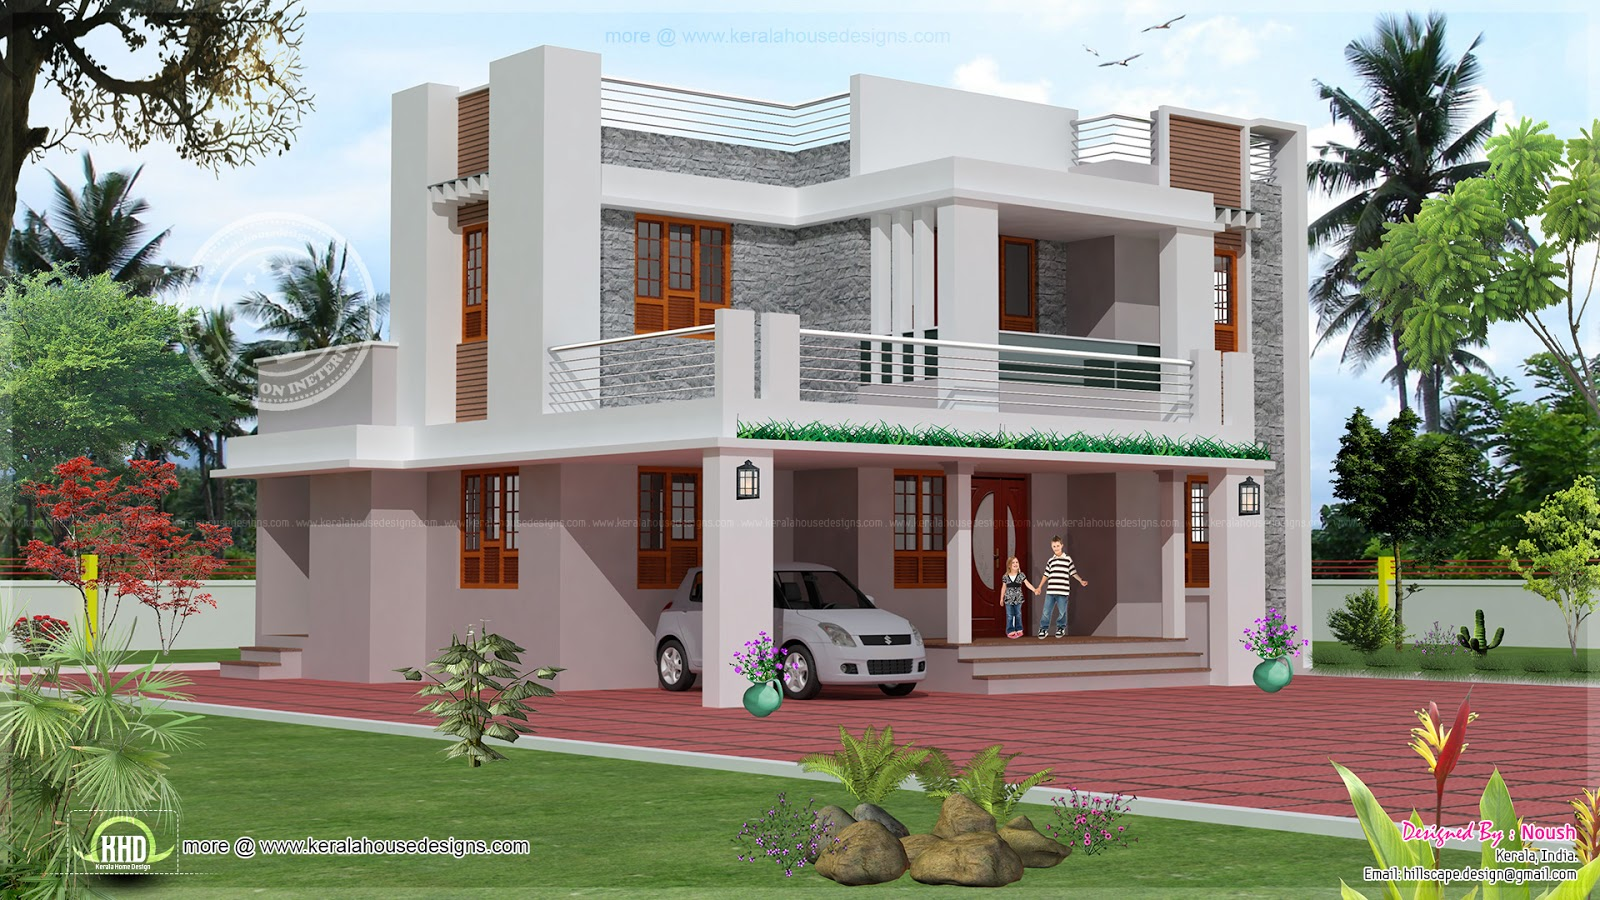 4 bedroom 2 story house exterior design home kerala plans for Home front design photo